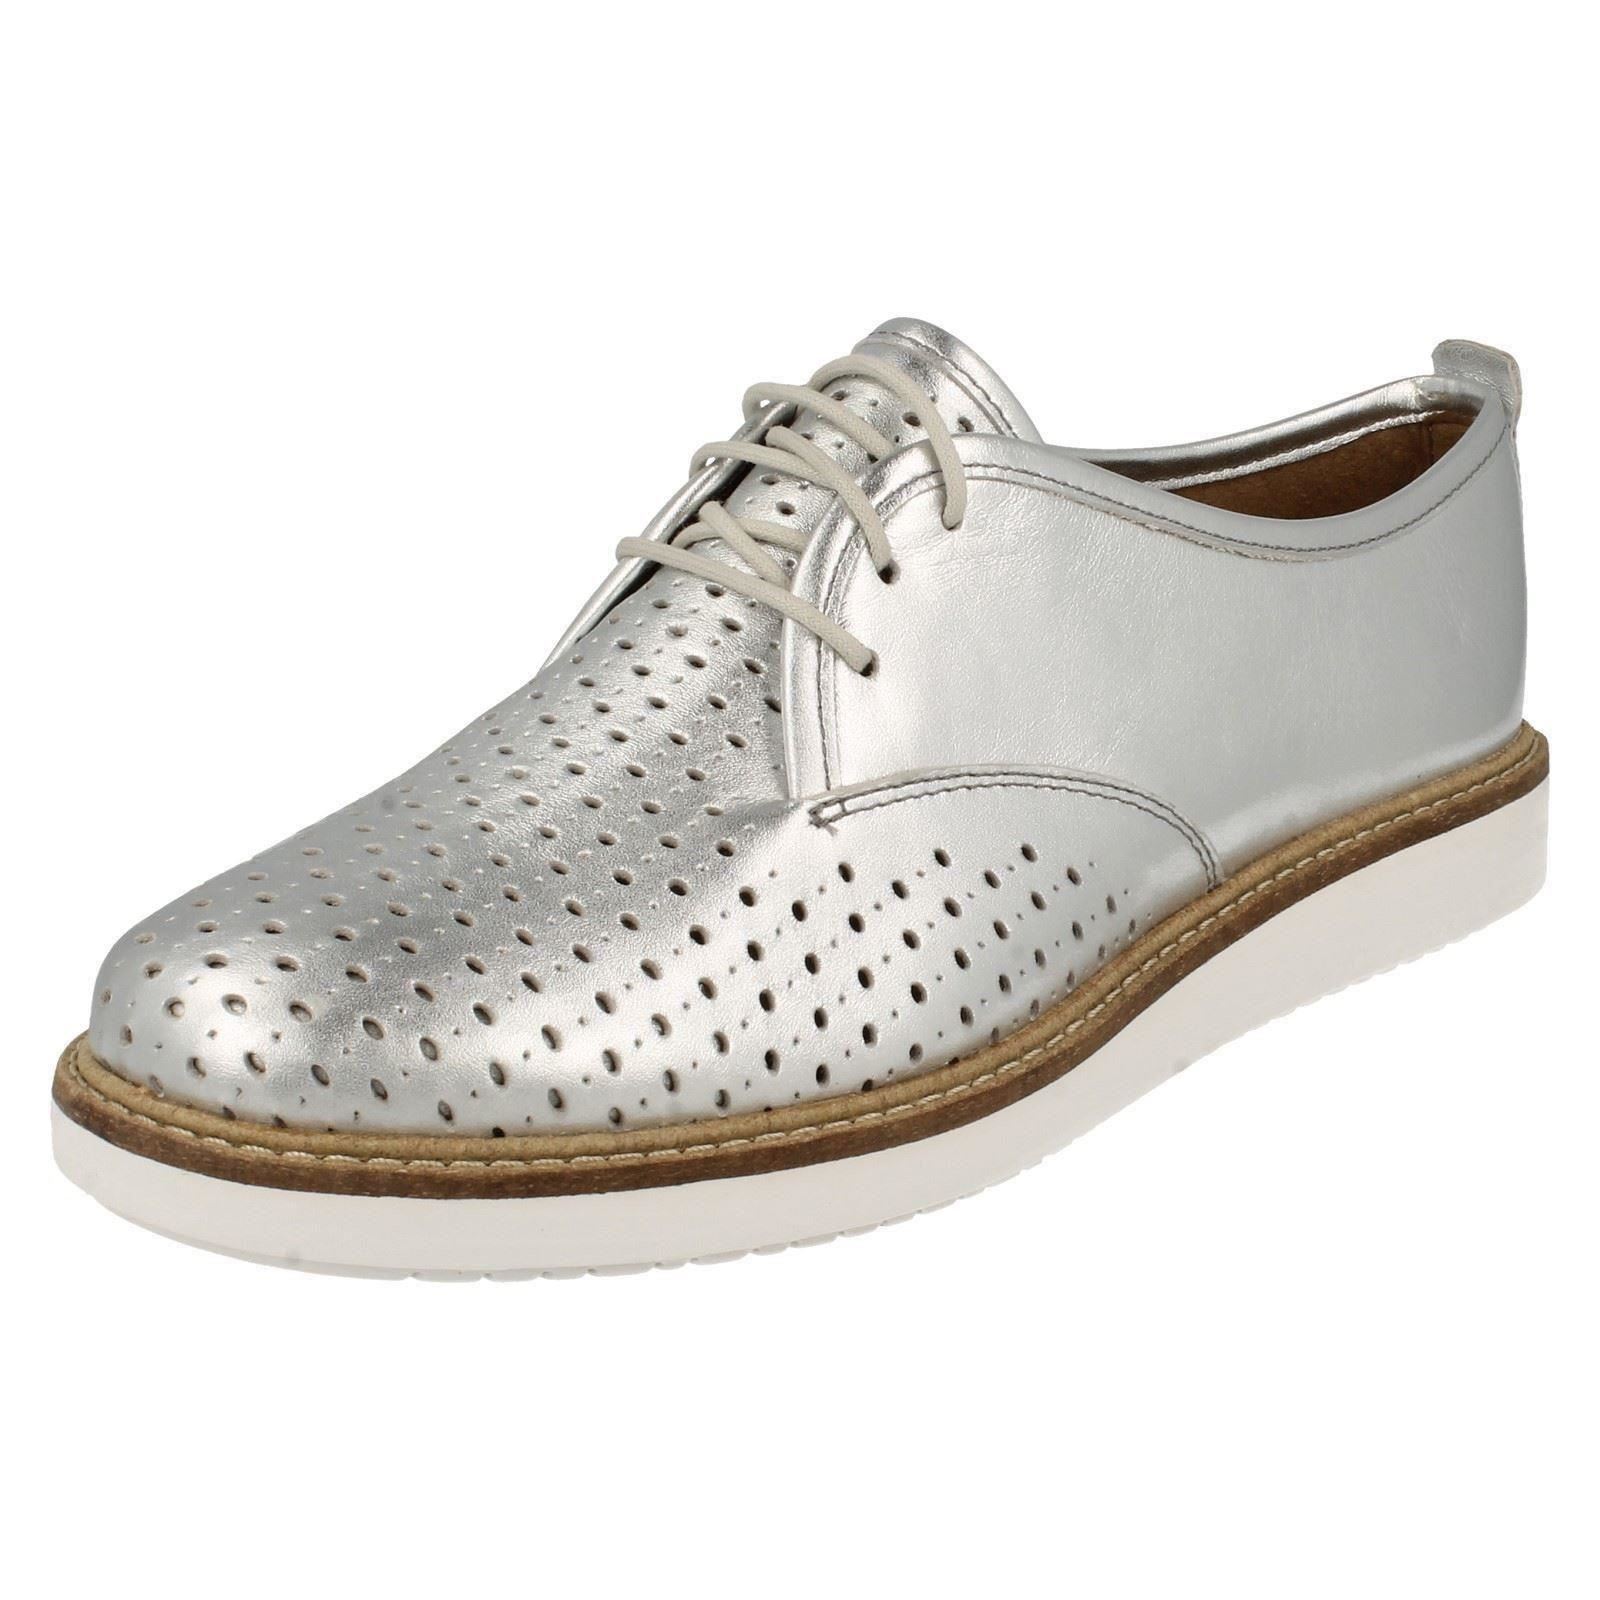 Ladies-Clarks-Casual-Shoes-039-Glick-Resseta-039